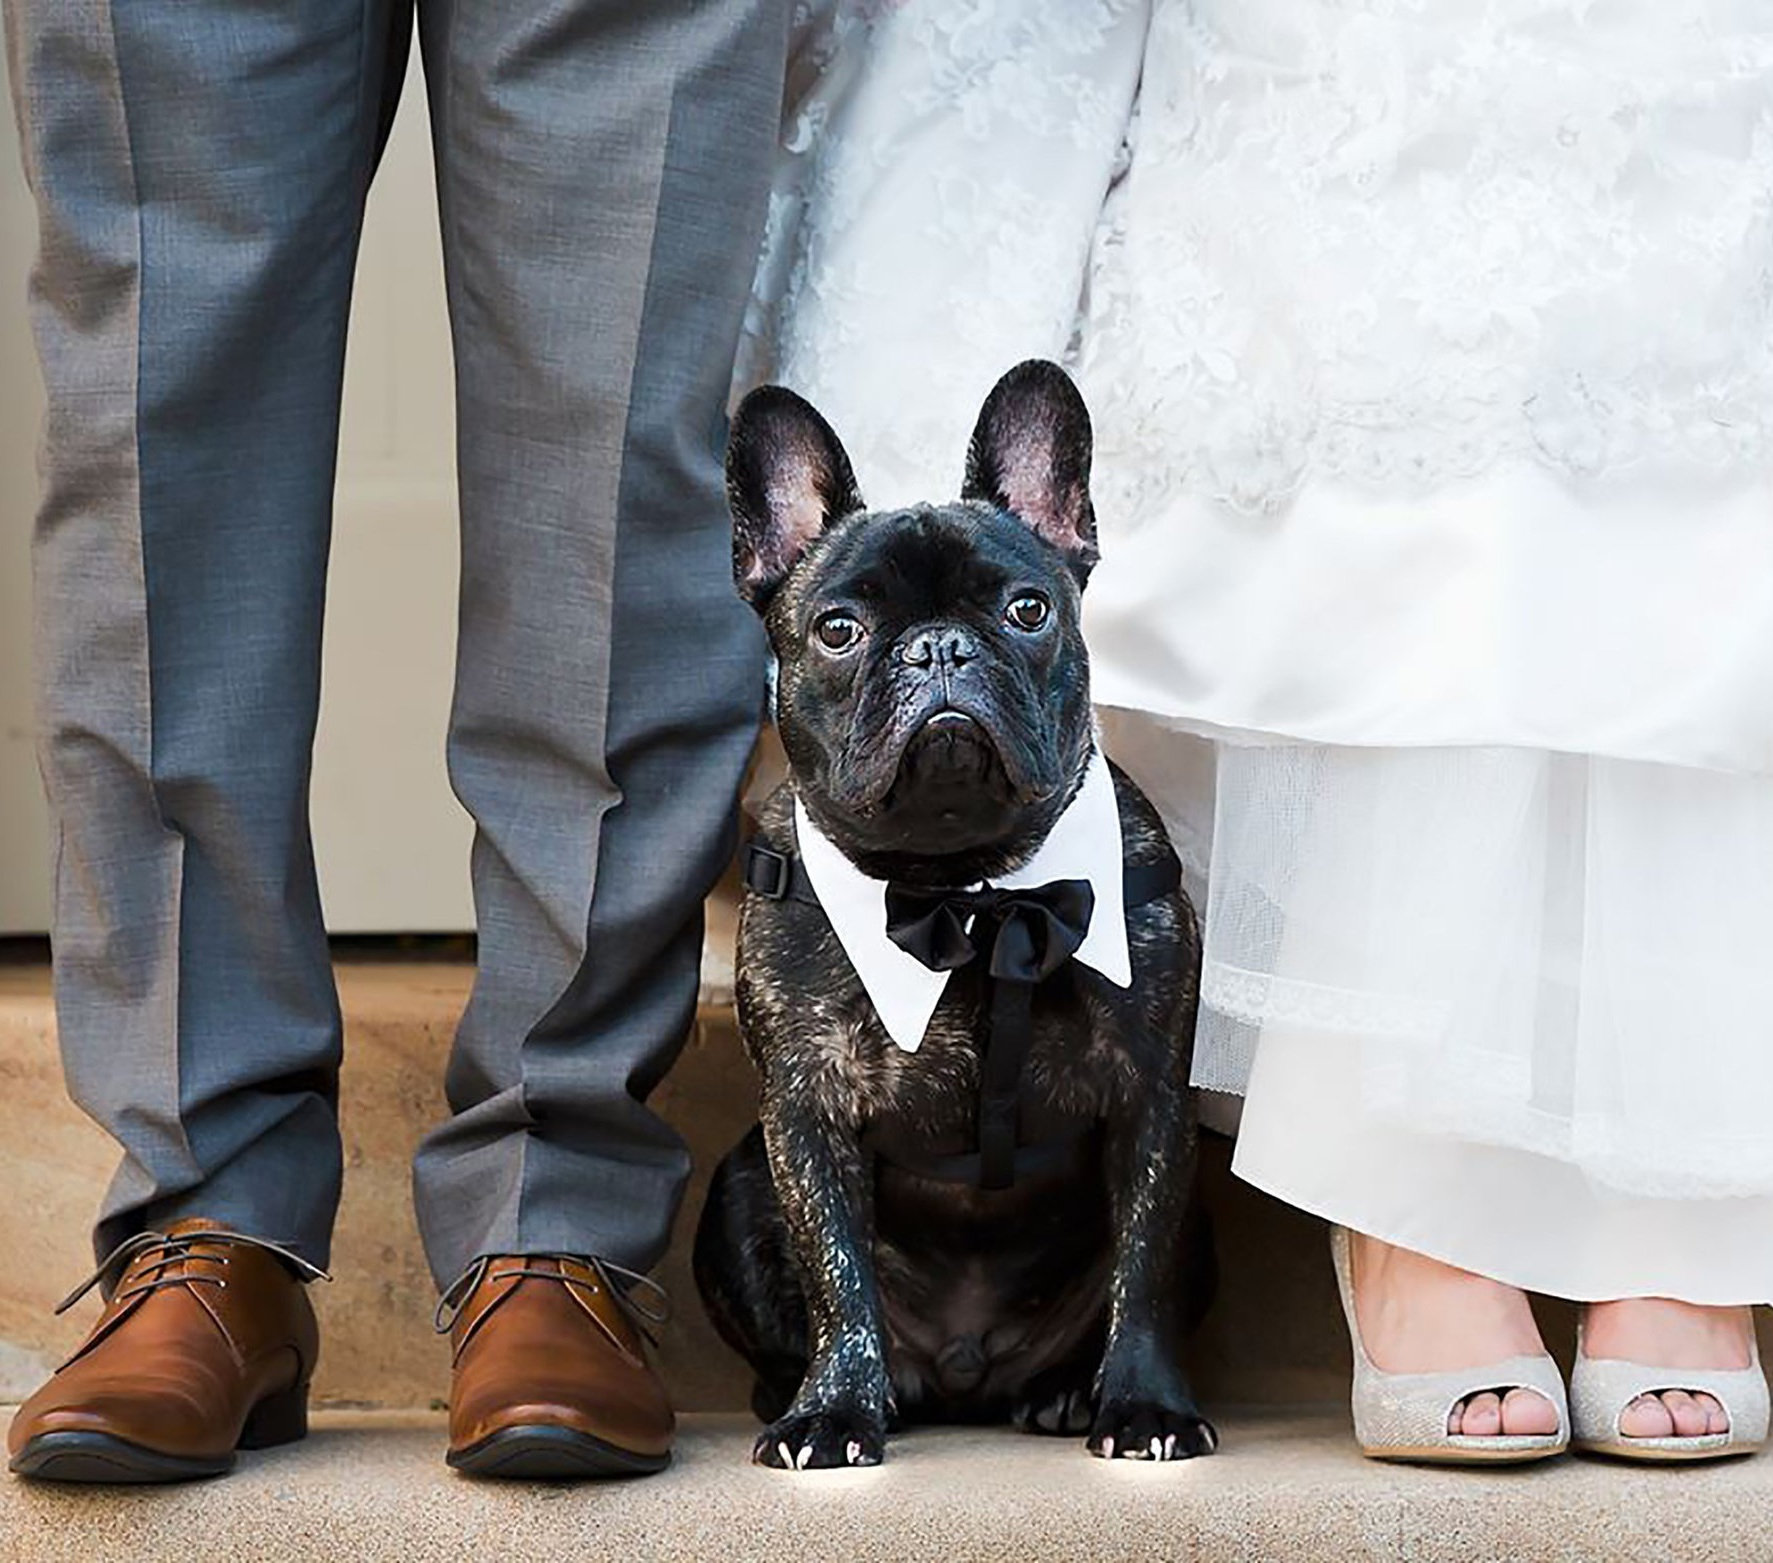 Wedding Chaperone - Do you want your dog there on your special day? No problem! I can help with looking after your dog for the day and getting them there to enjoy the day too, all while looking very dapper!Learn more ➝